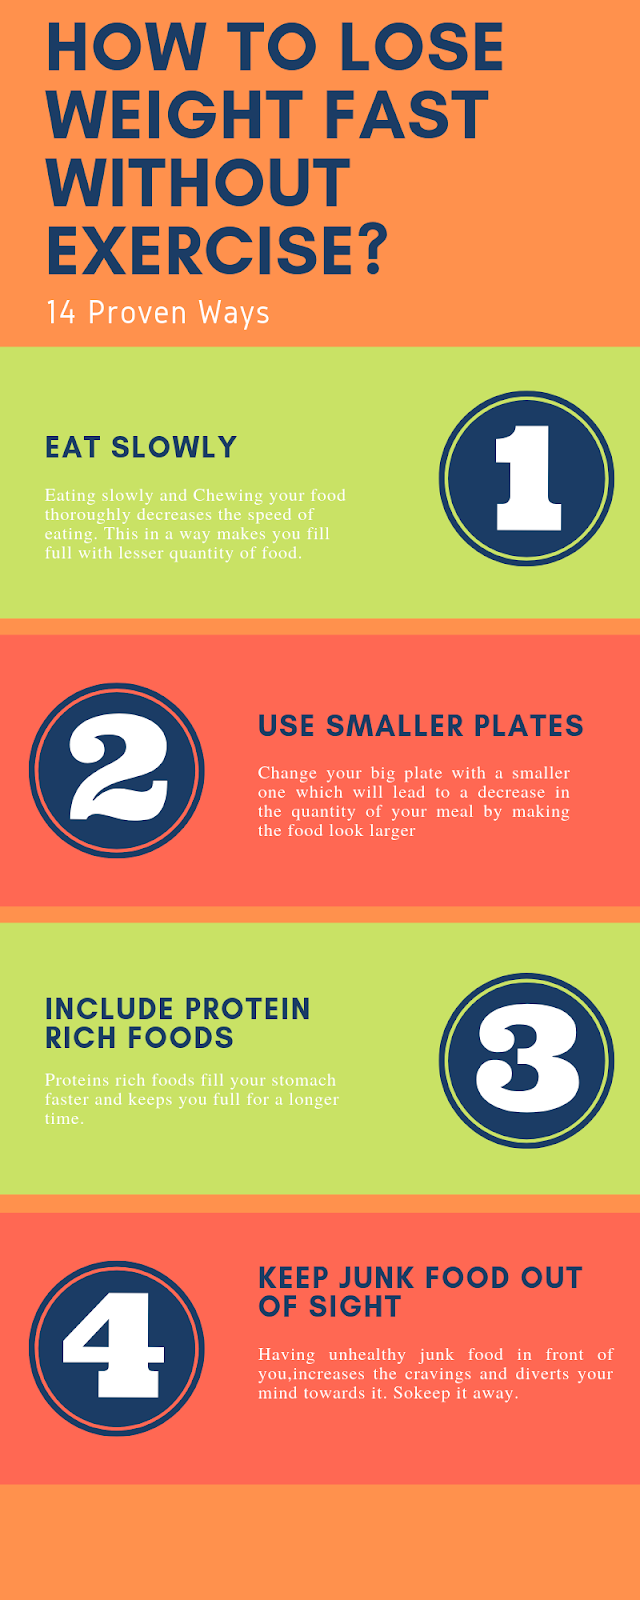 How to lose weight fast without exercise?-Infographic 1- 4